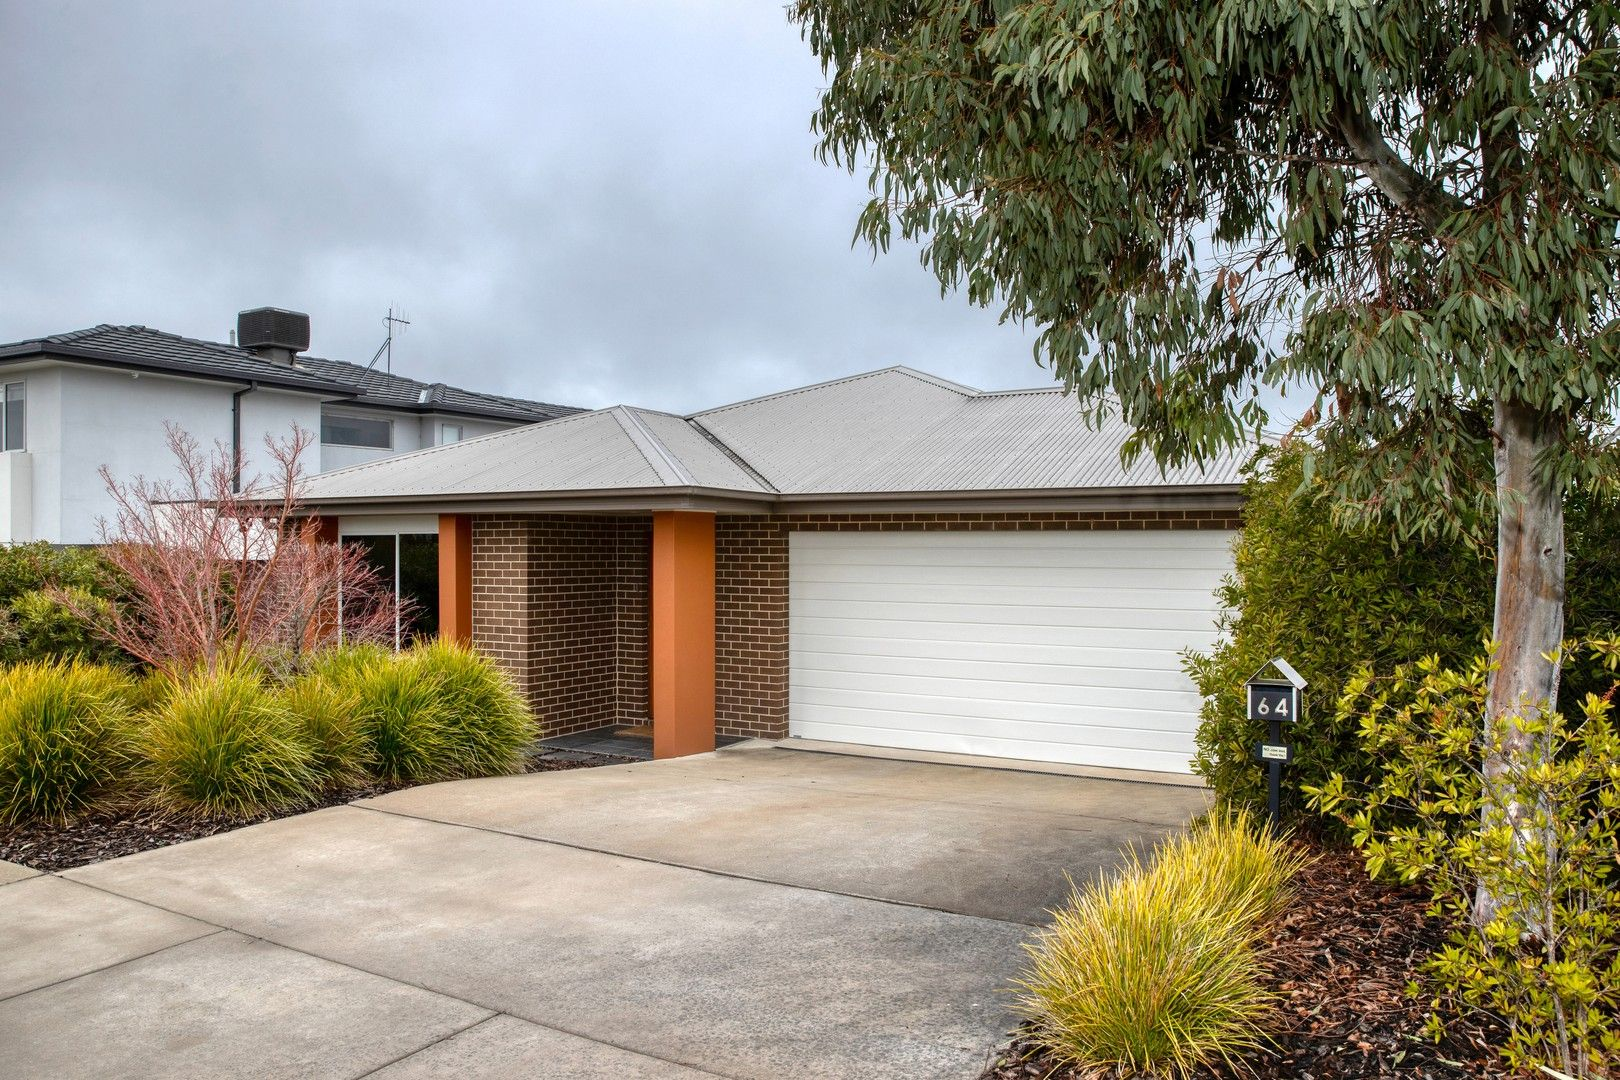 64 Fred Daly Avenue, Coombs ACT 2611, Image 0